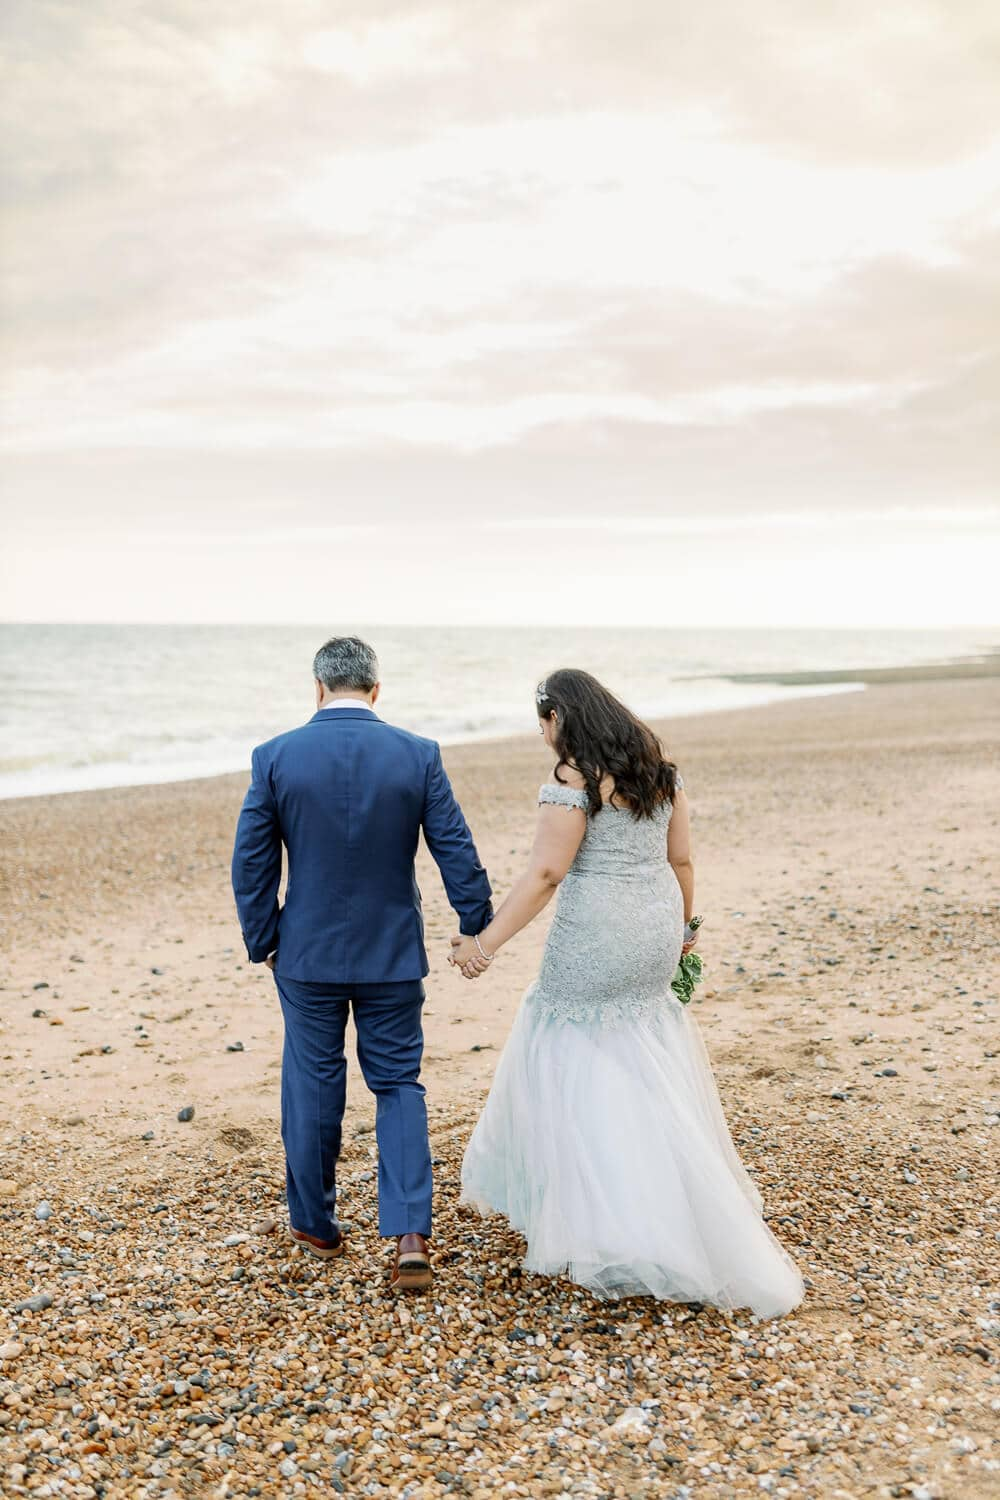 Hove engagement photography in Brighton